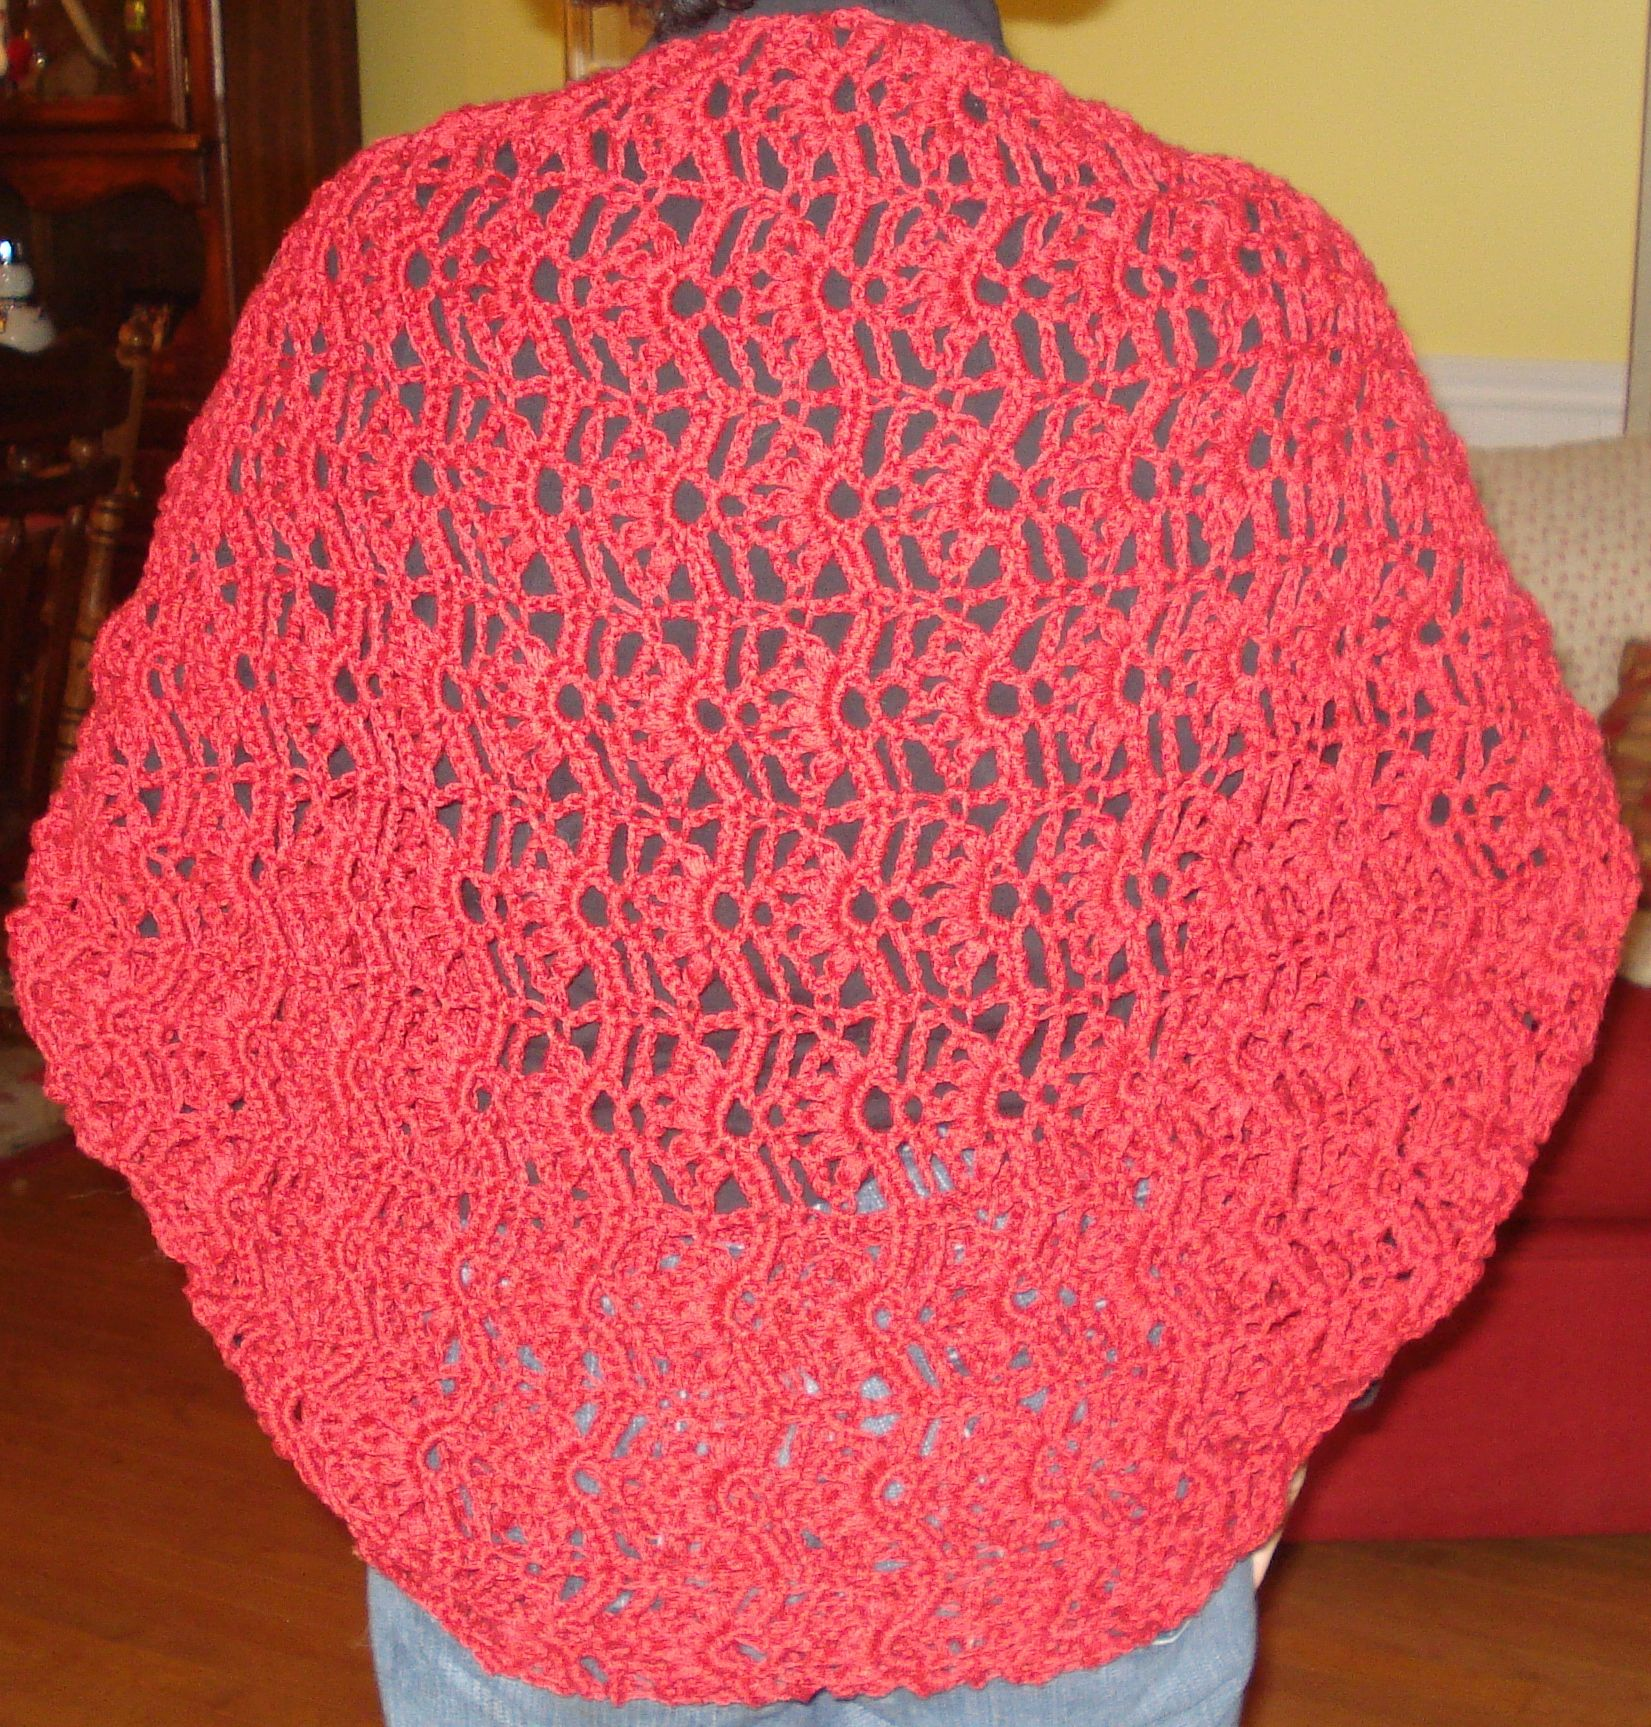 I learned how to crochet so I could make this to wear to a wedding.  It was made using a Rowan Cotton Yarn.